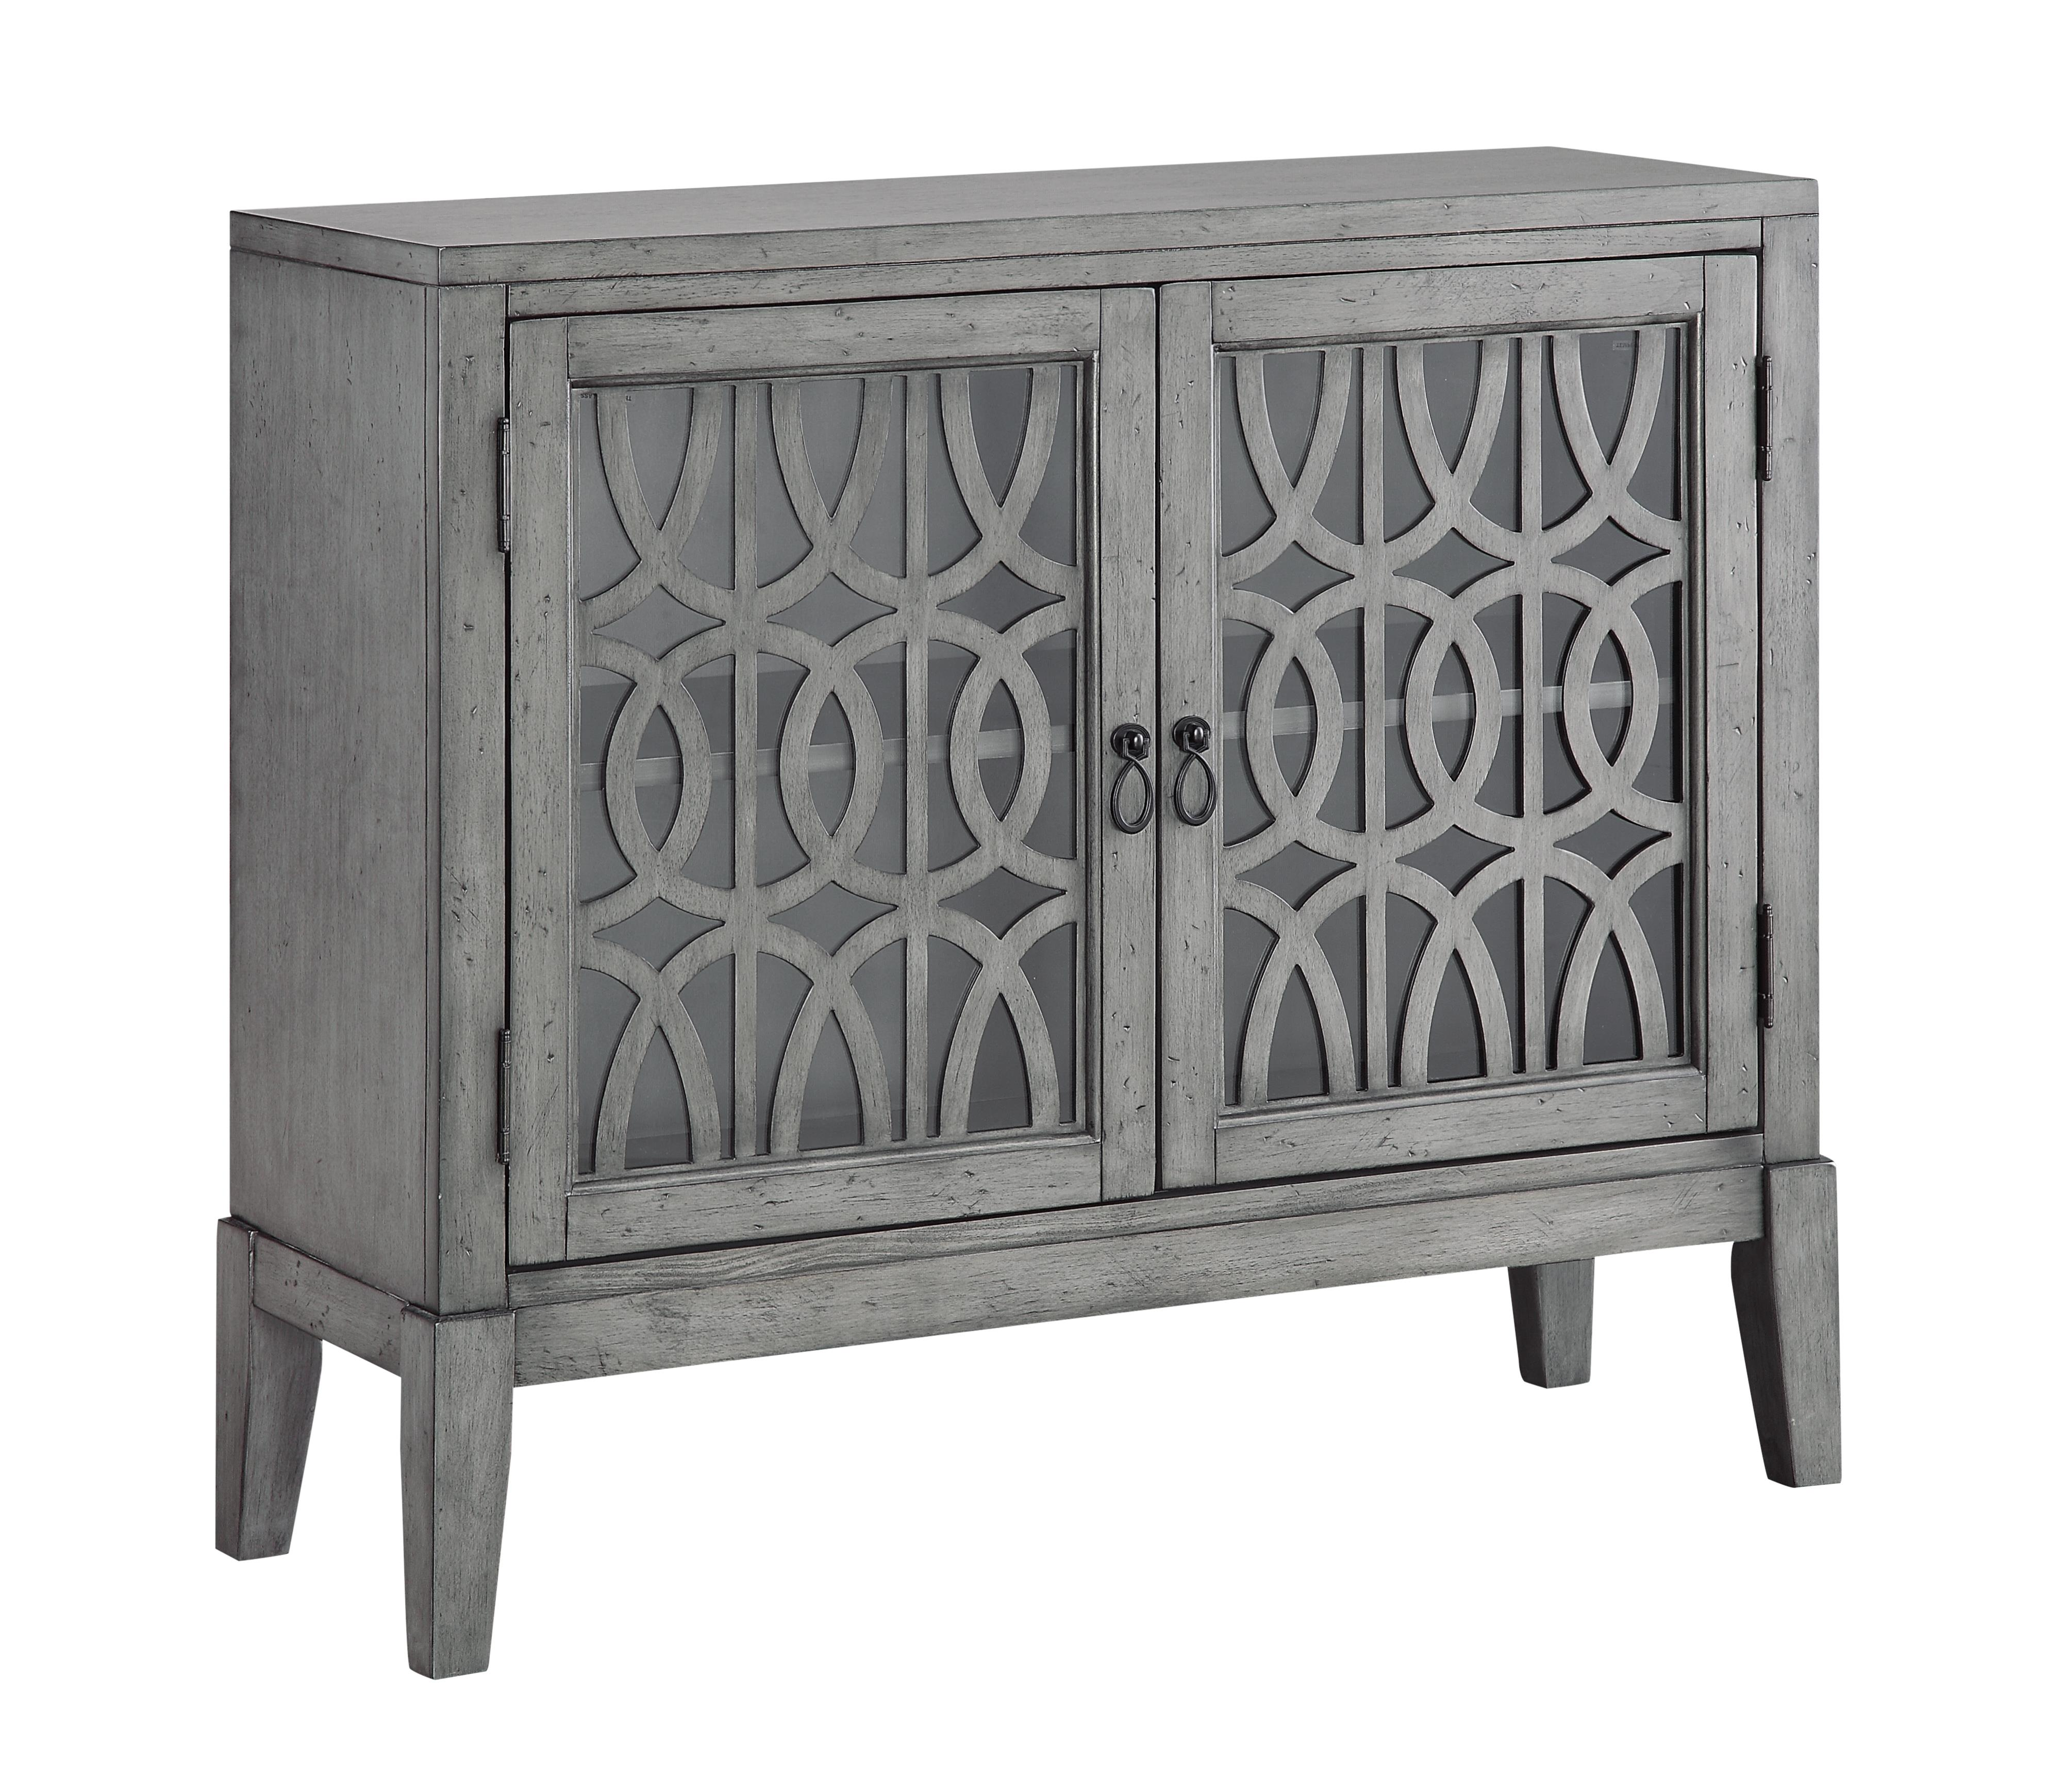 Coast to Coast Imports Accents 2 Door Cabinet - Item Number: 70700